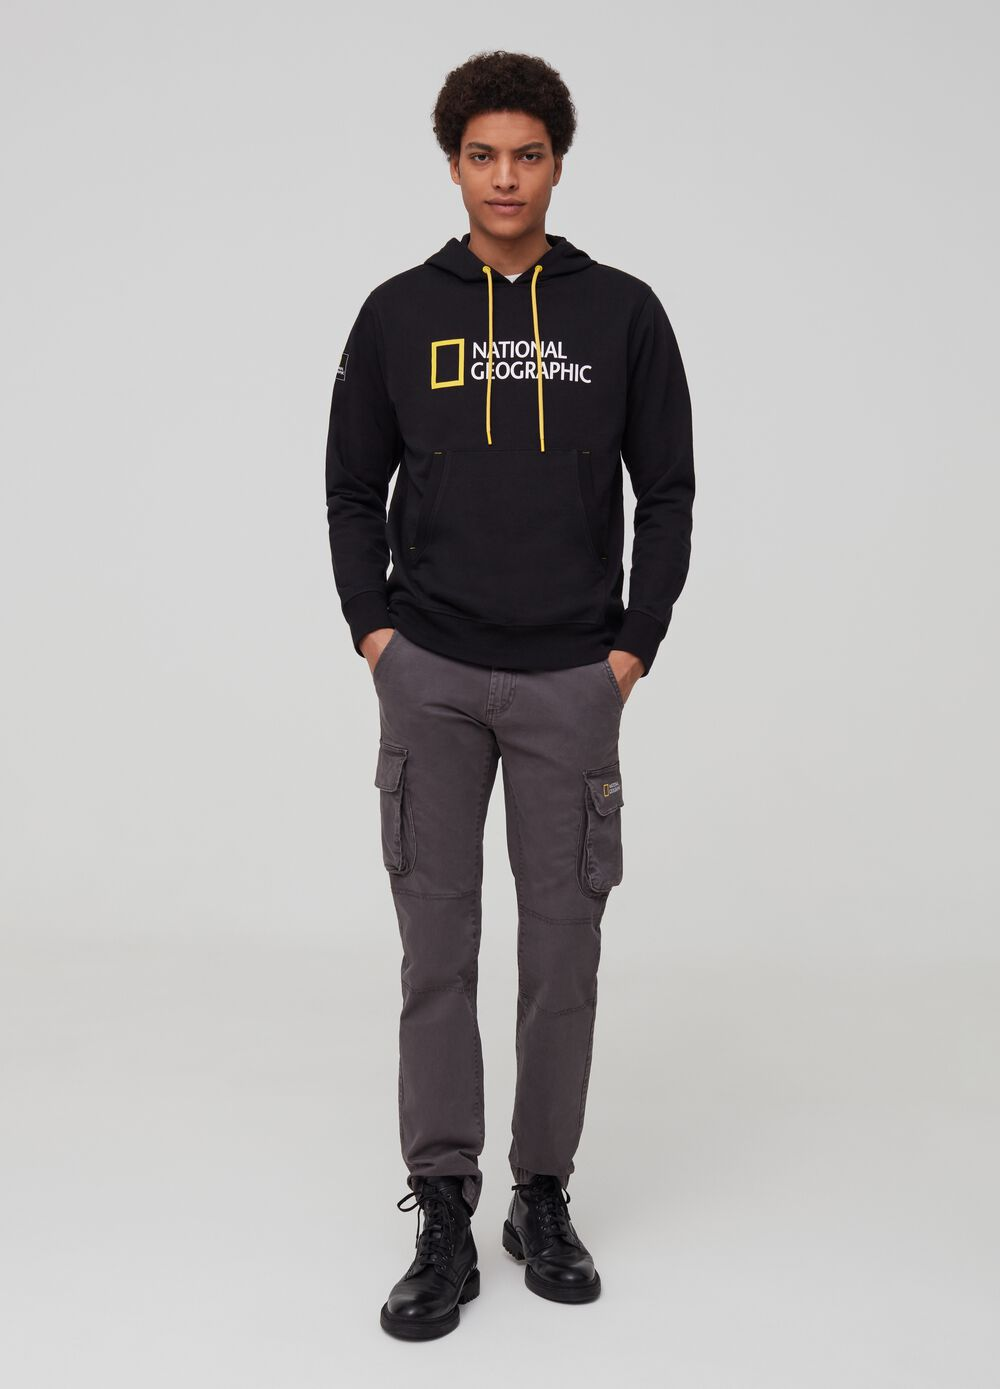 National Geographic cargo trousers